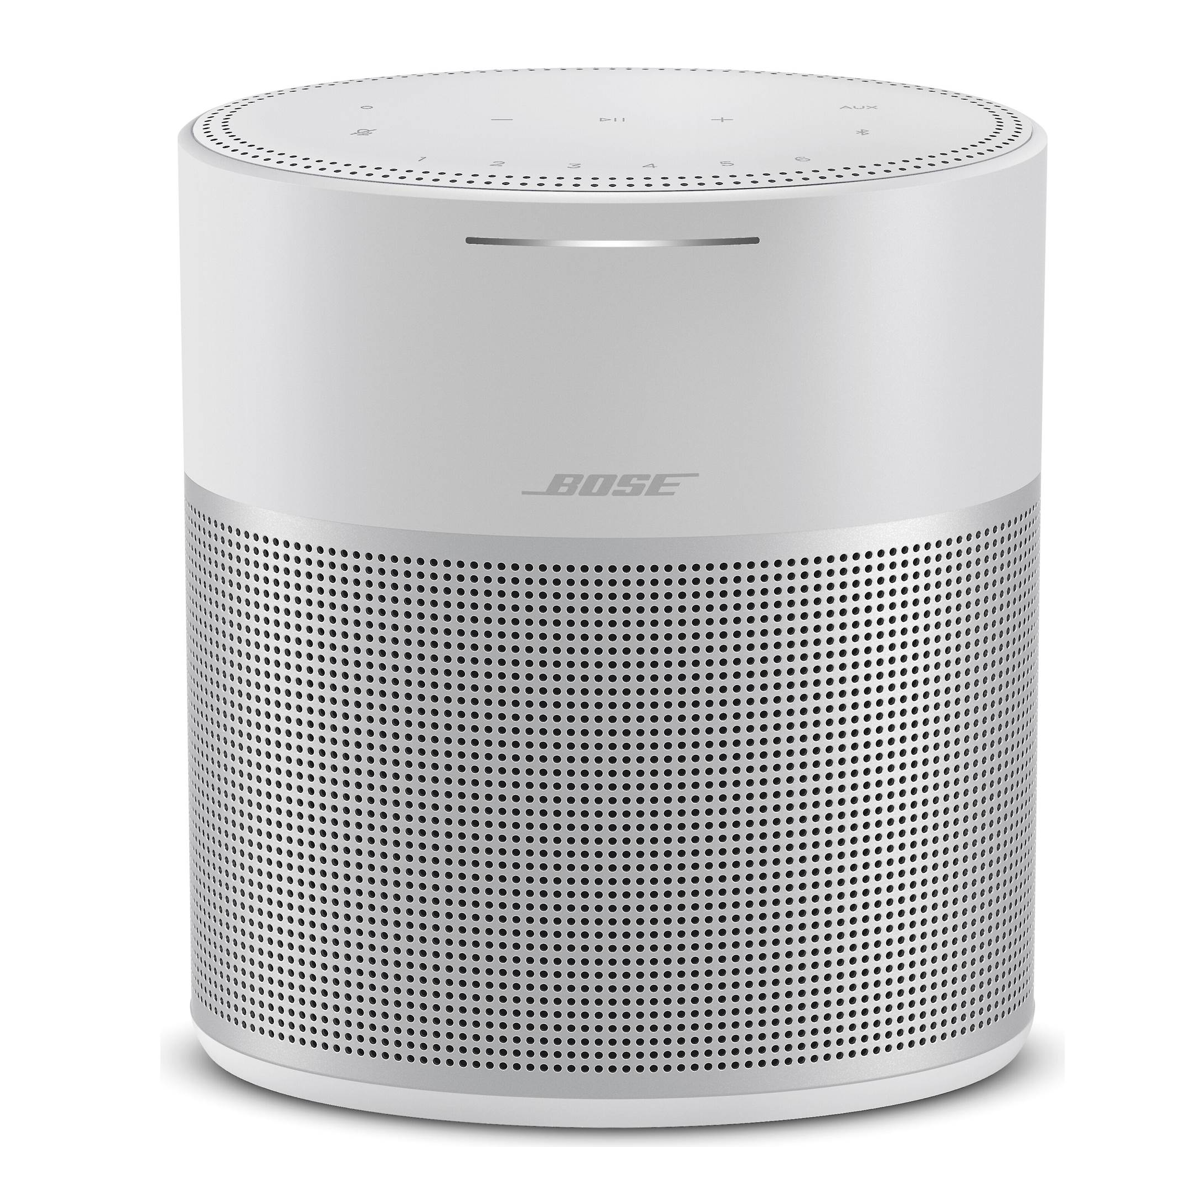 Bose Home Speaker 300, Bose, Bluetooth Wifi Speaker - AVStore.in